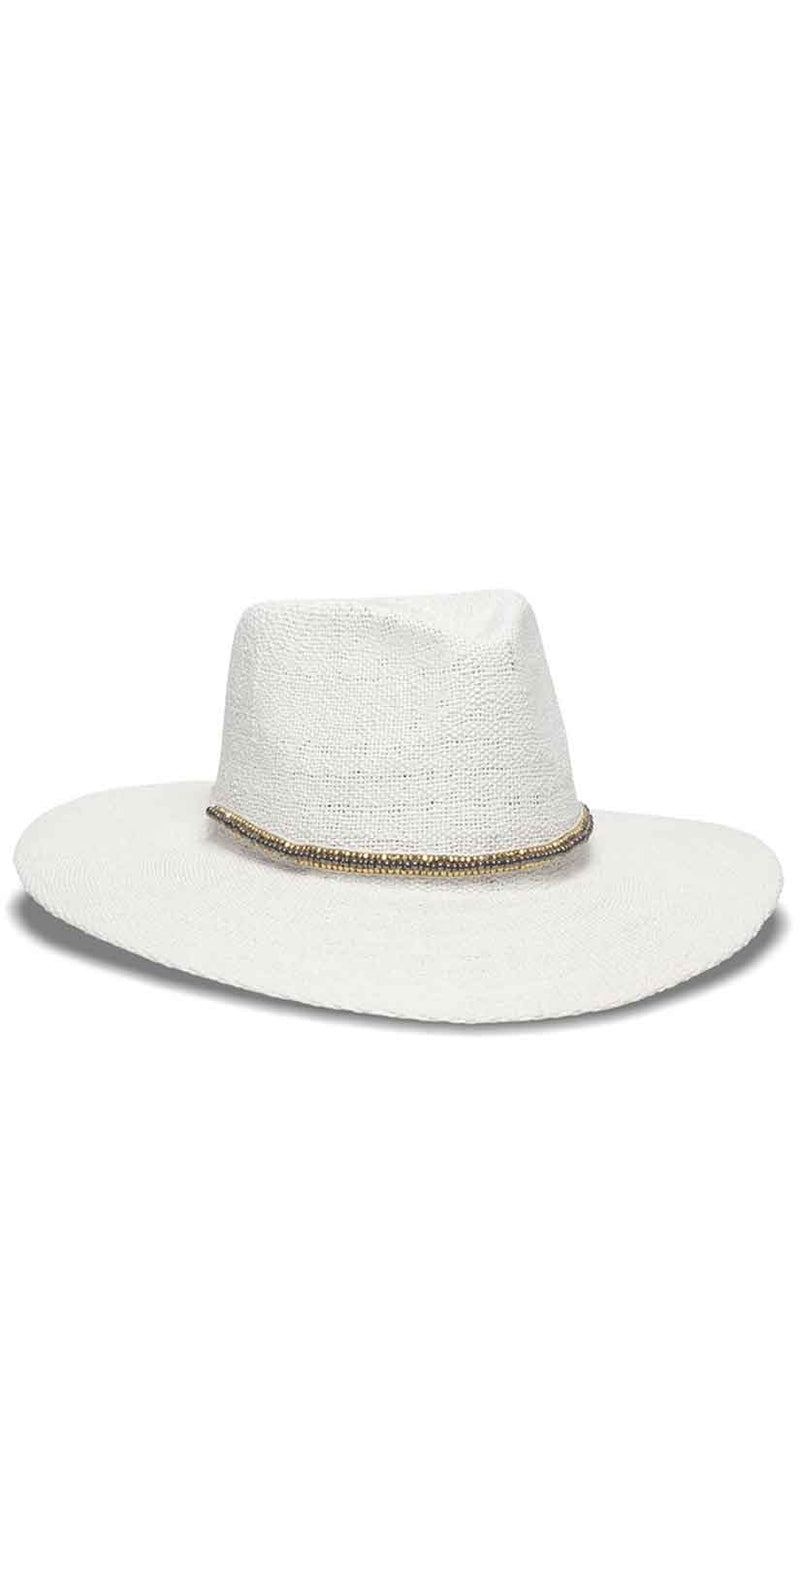 Nikki Beach Monte Carlo Hat in Black and White: